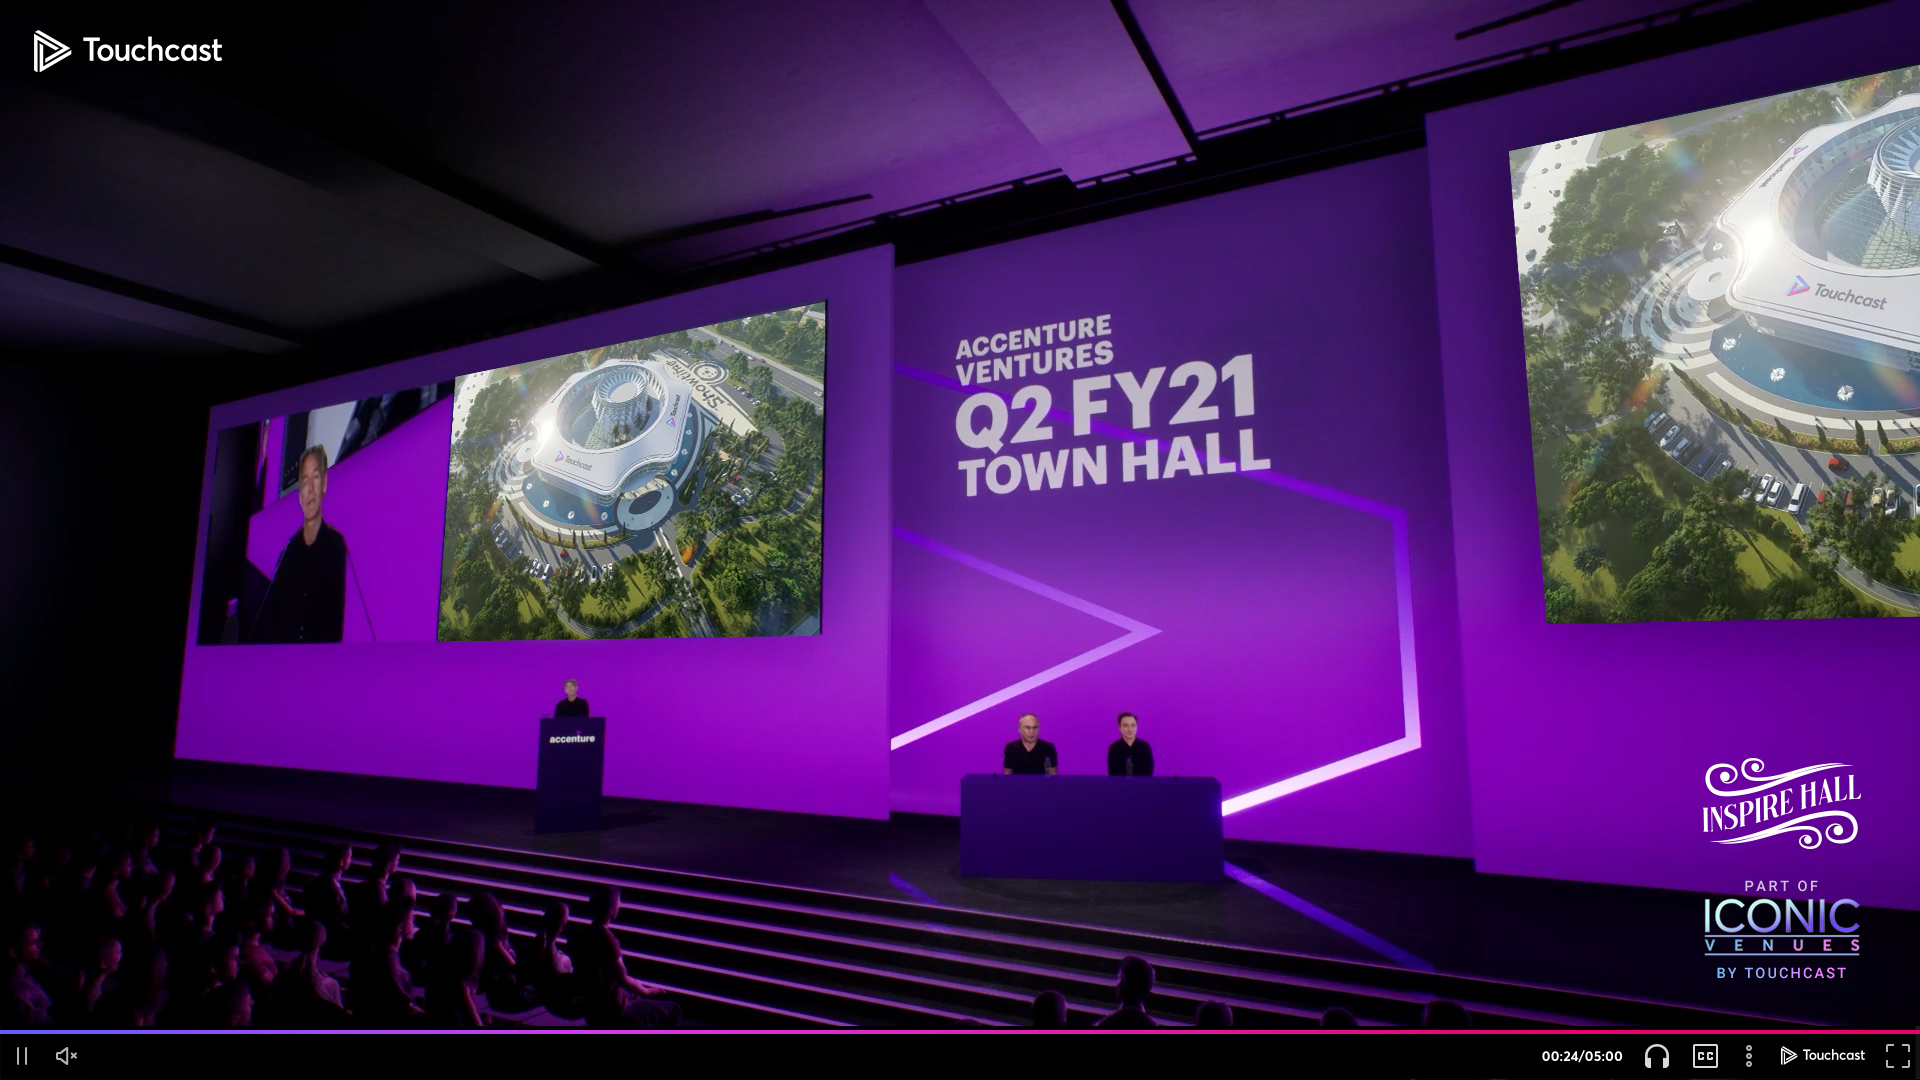 Virtual event hall within the Touchcast interface